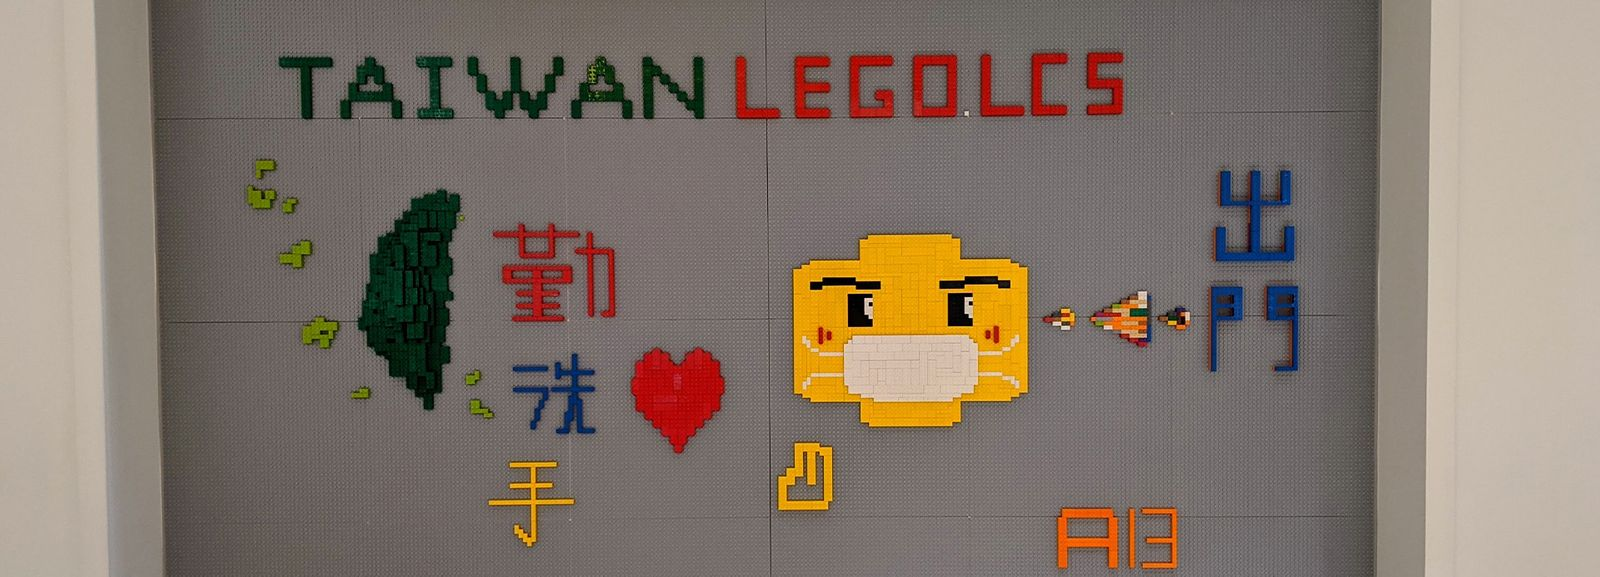 Photo of the LEGO store in Taipei promoting hand washing.